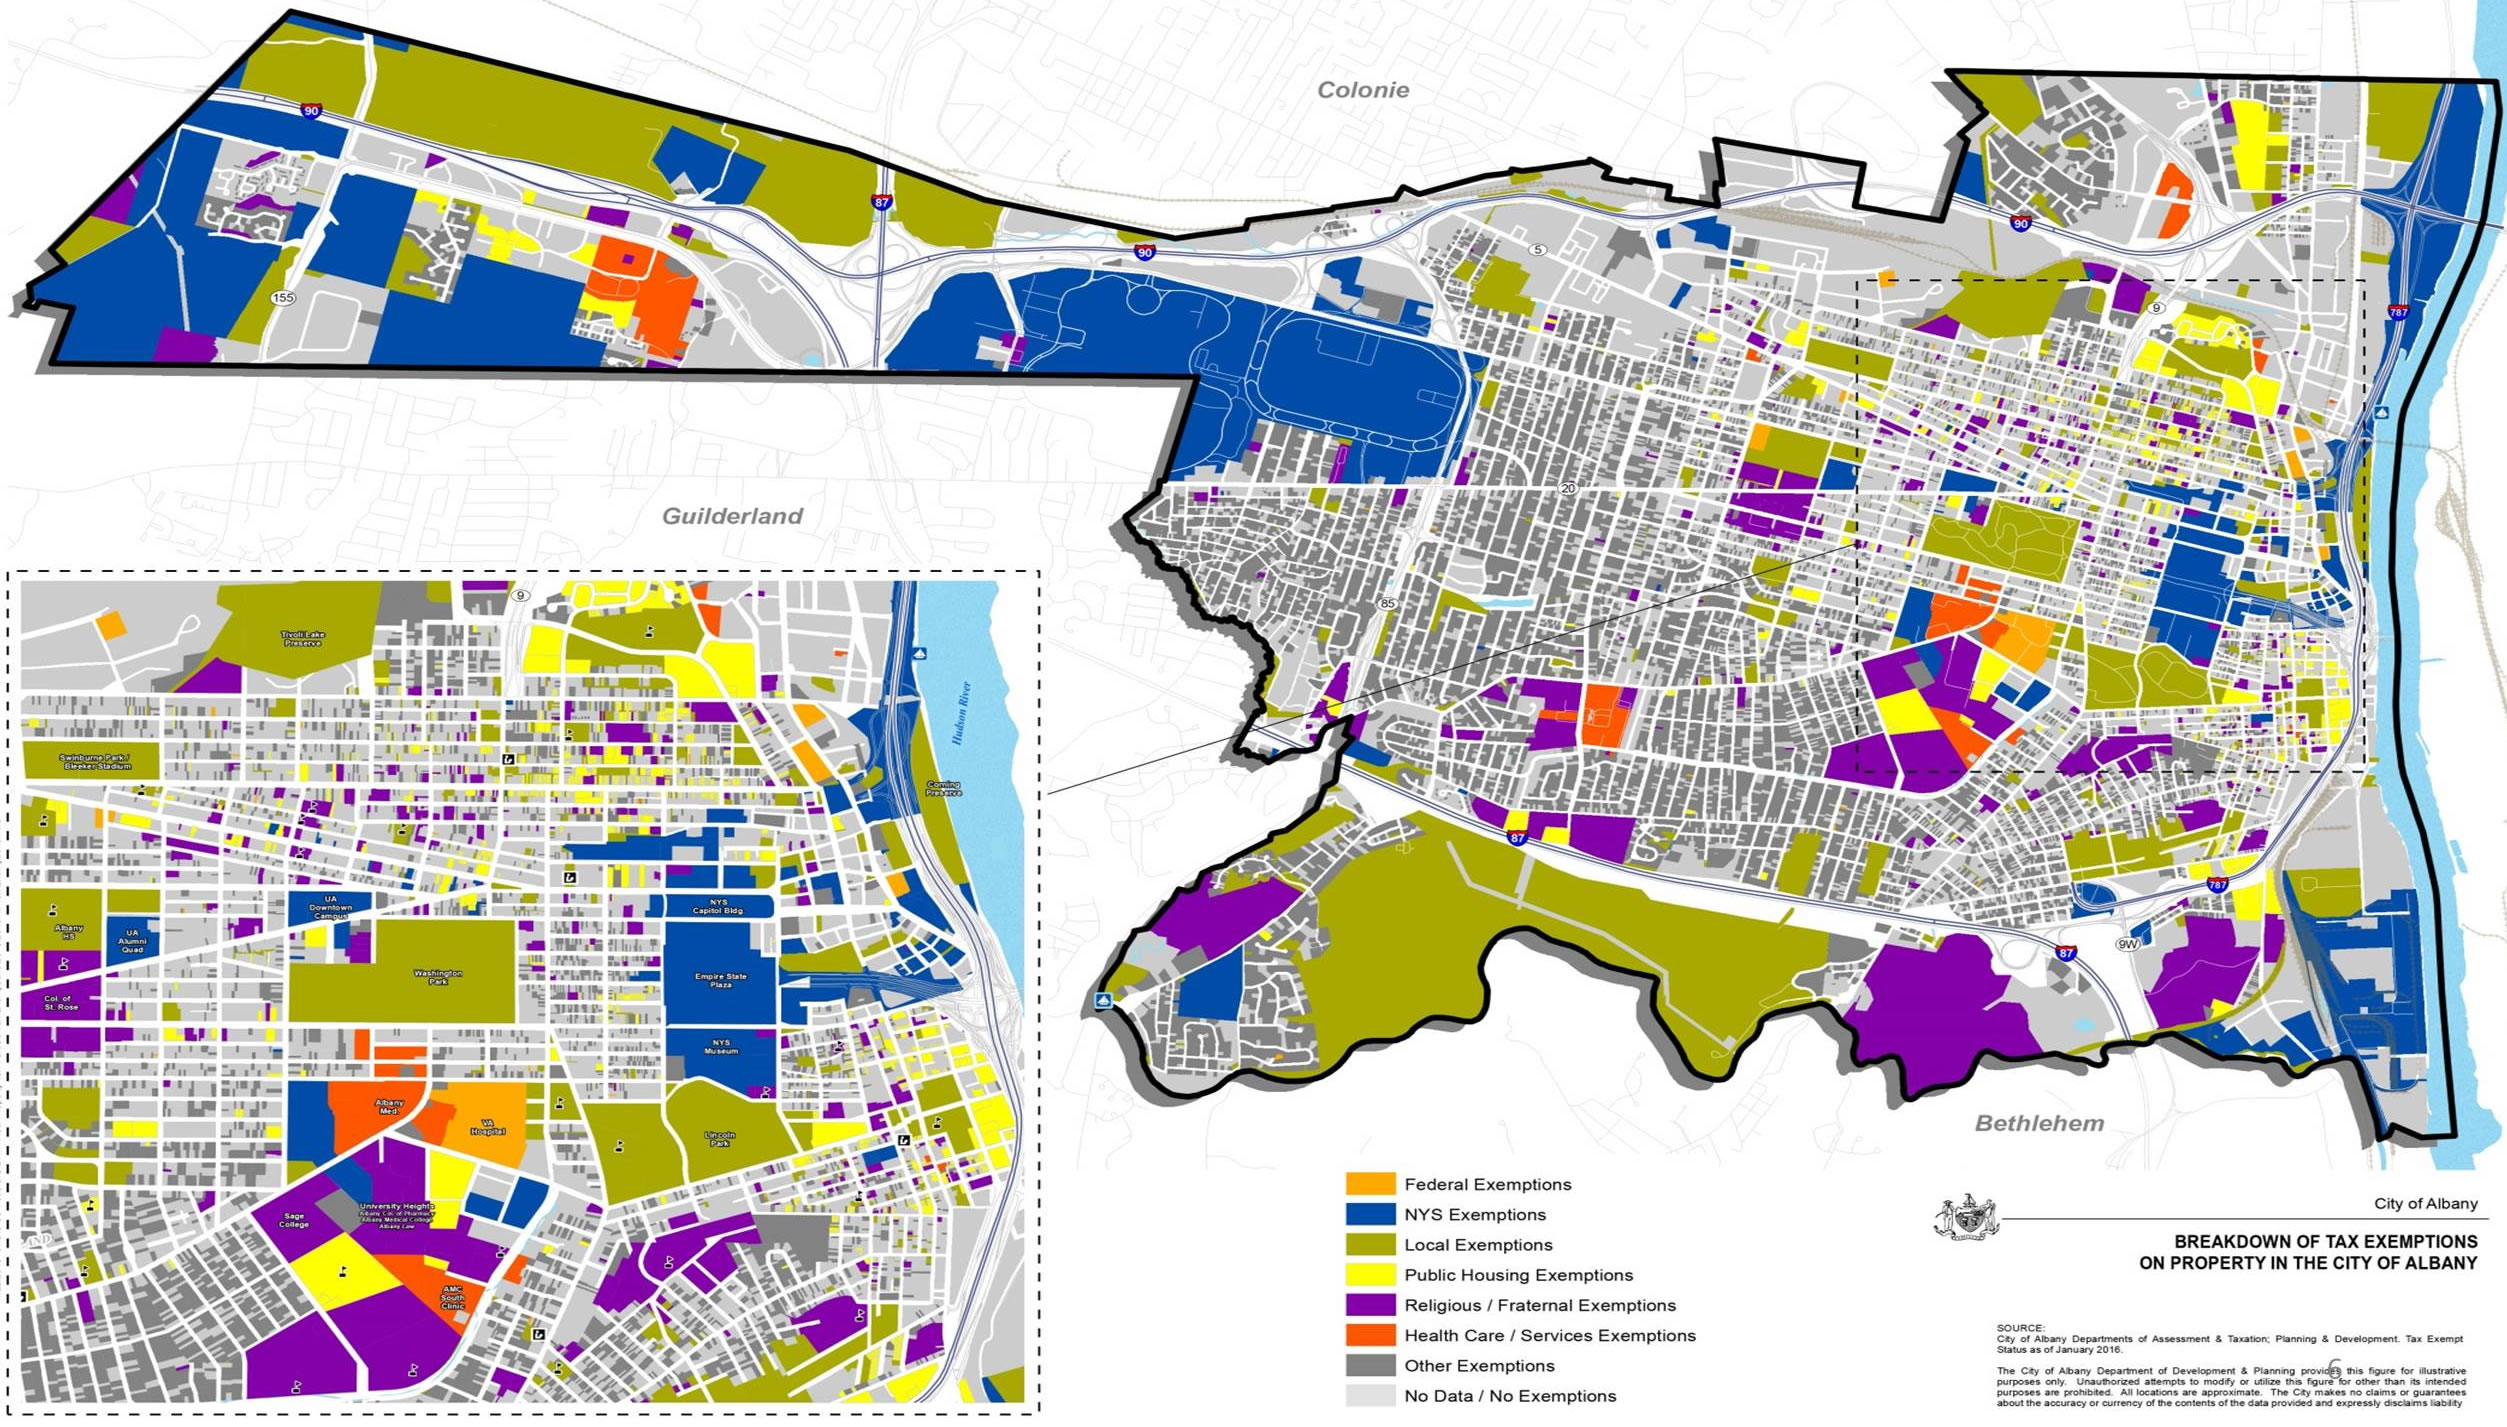 The untaxed city within the city All Over Albany